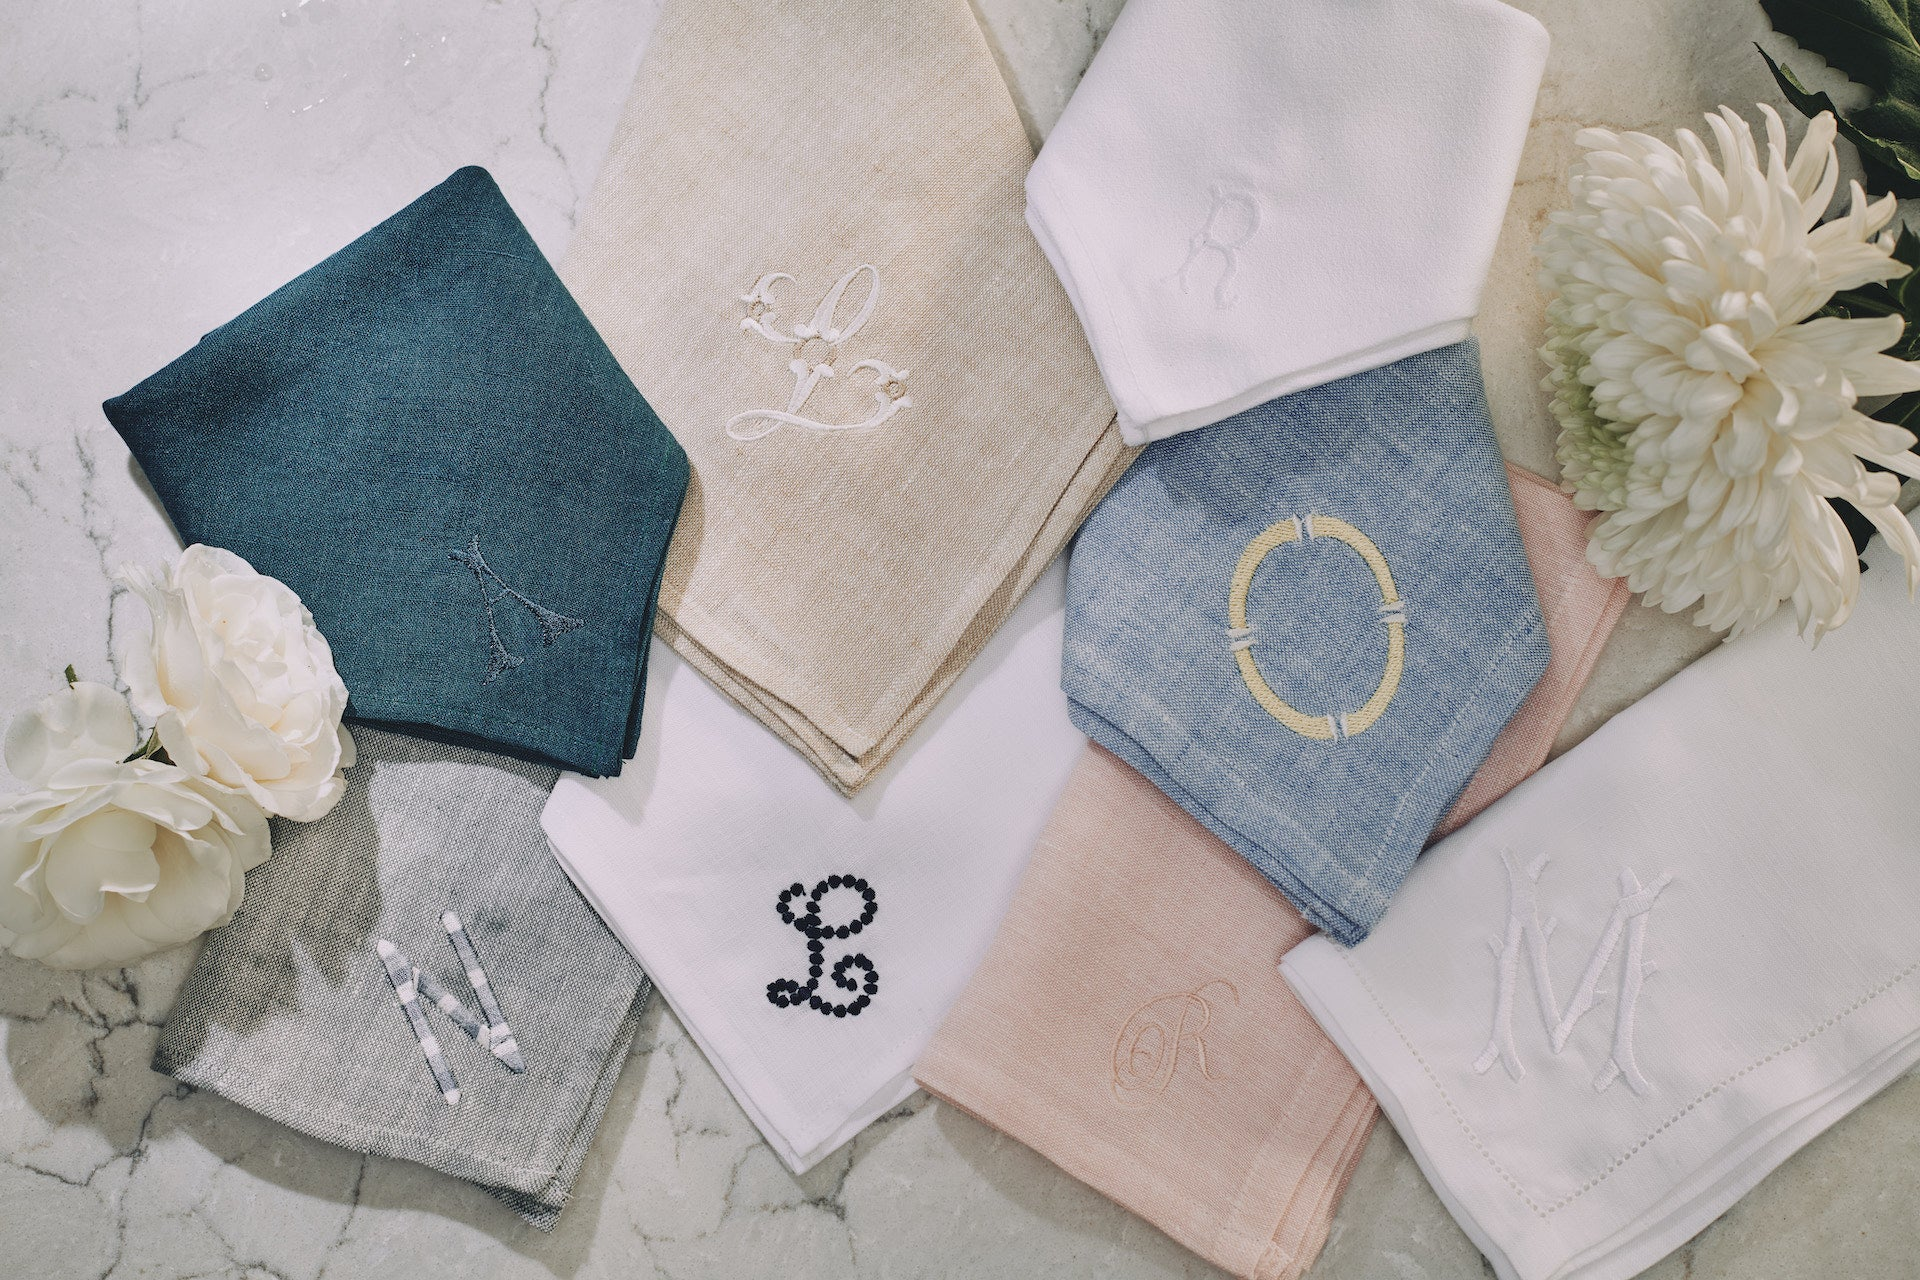 Luxury initialised initial monogram monogrammed napkins placemats table linens bespoke custom